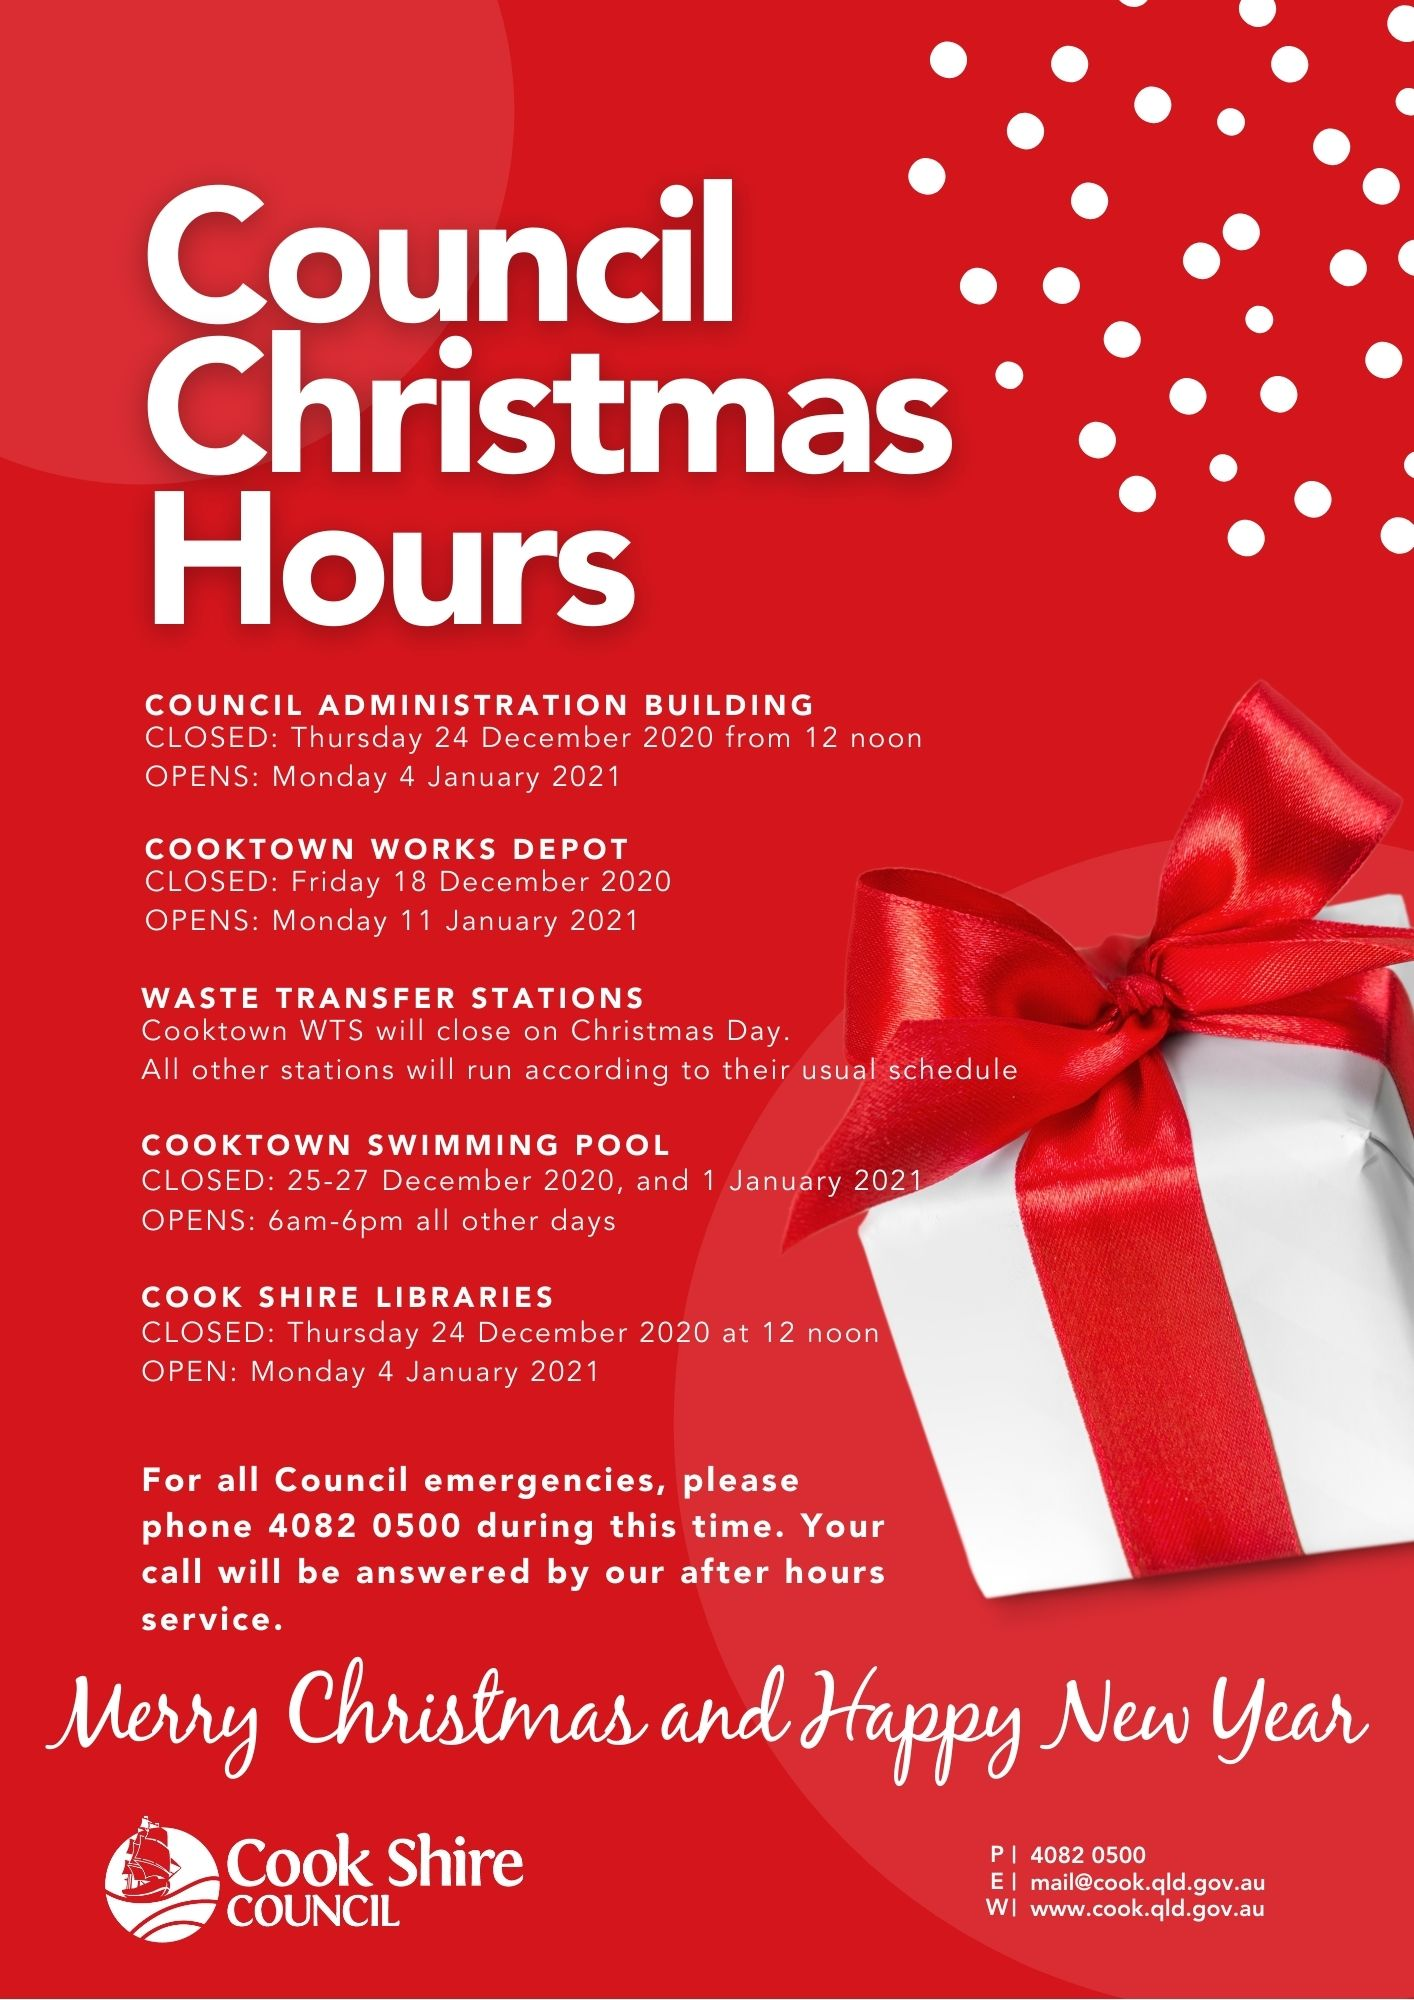 Council's Christmas Hours 2020